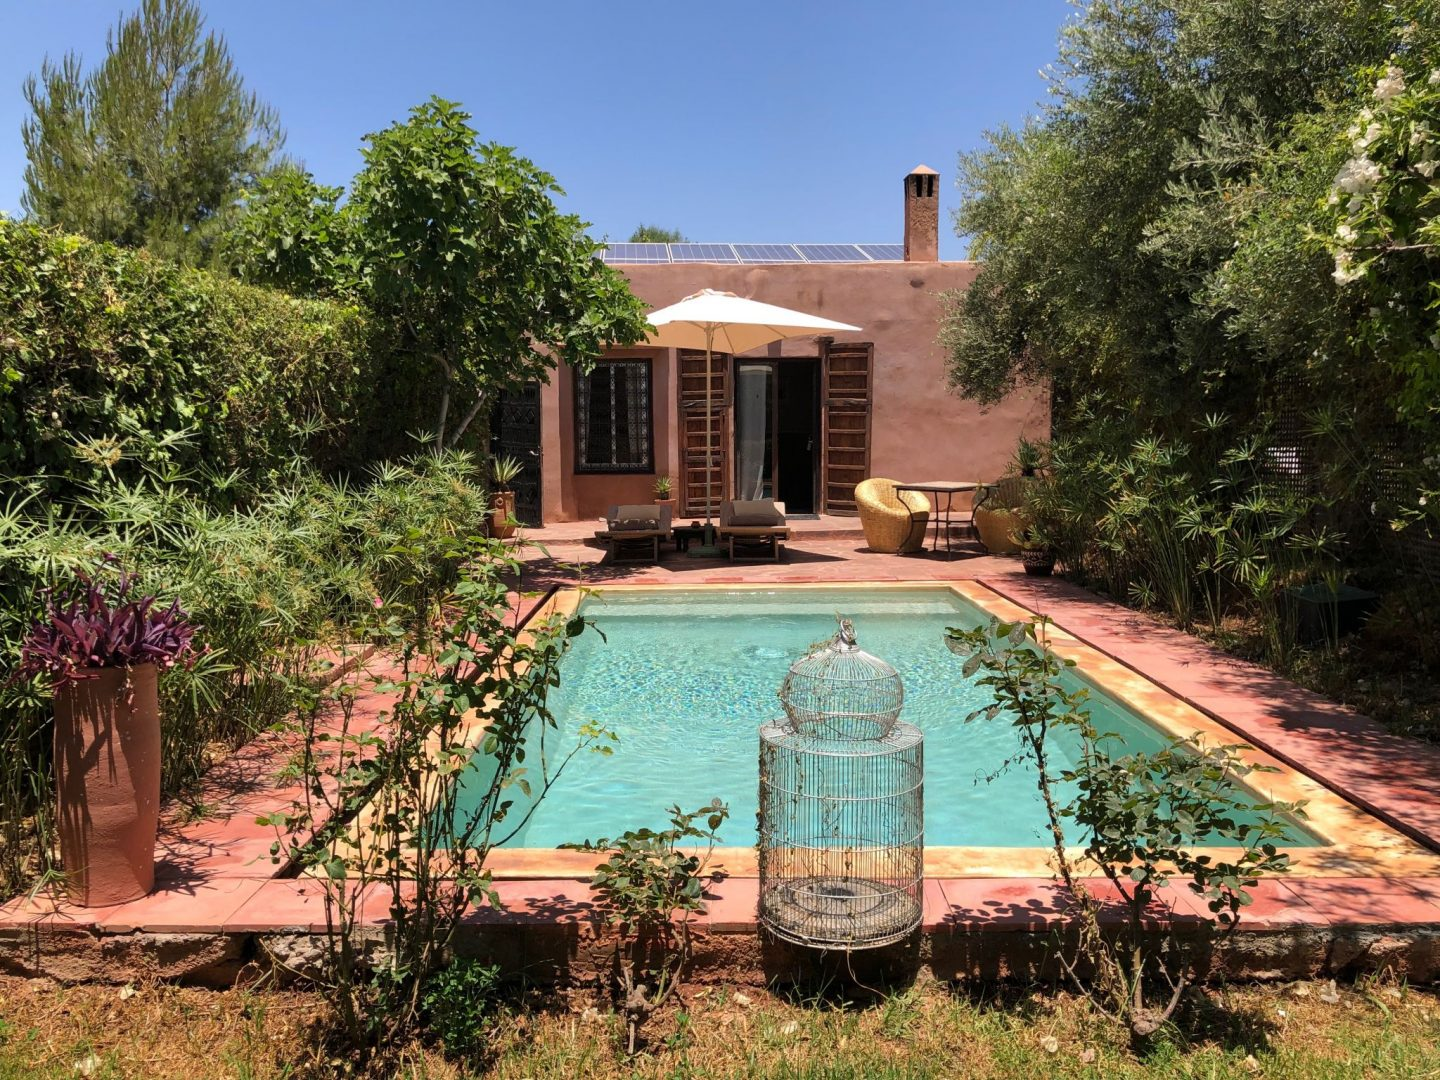 Luxury hotel Kasbah Bab Ourika Garden room with a pool. Elisha couldn't contain her excitement when she found out the room came with a pool